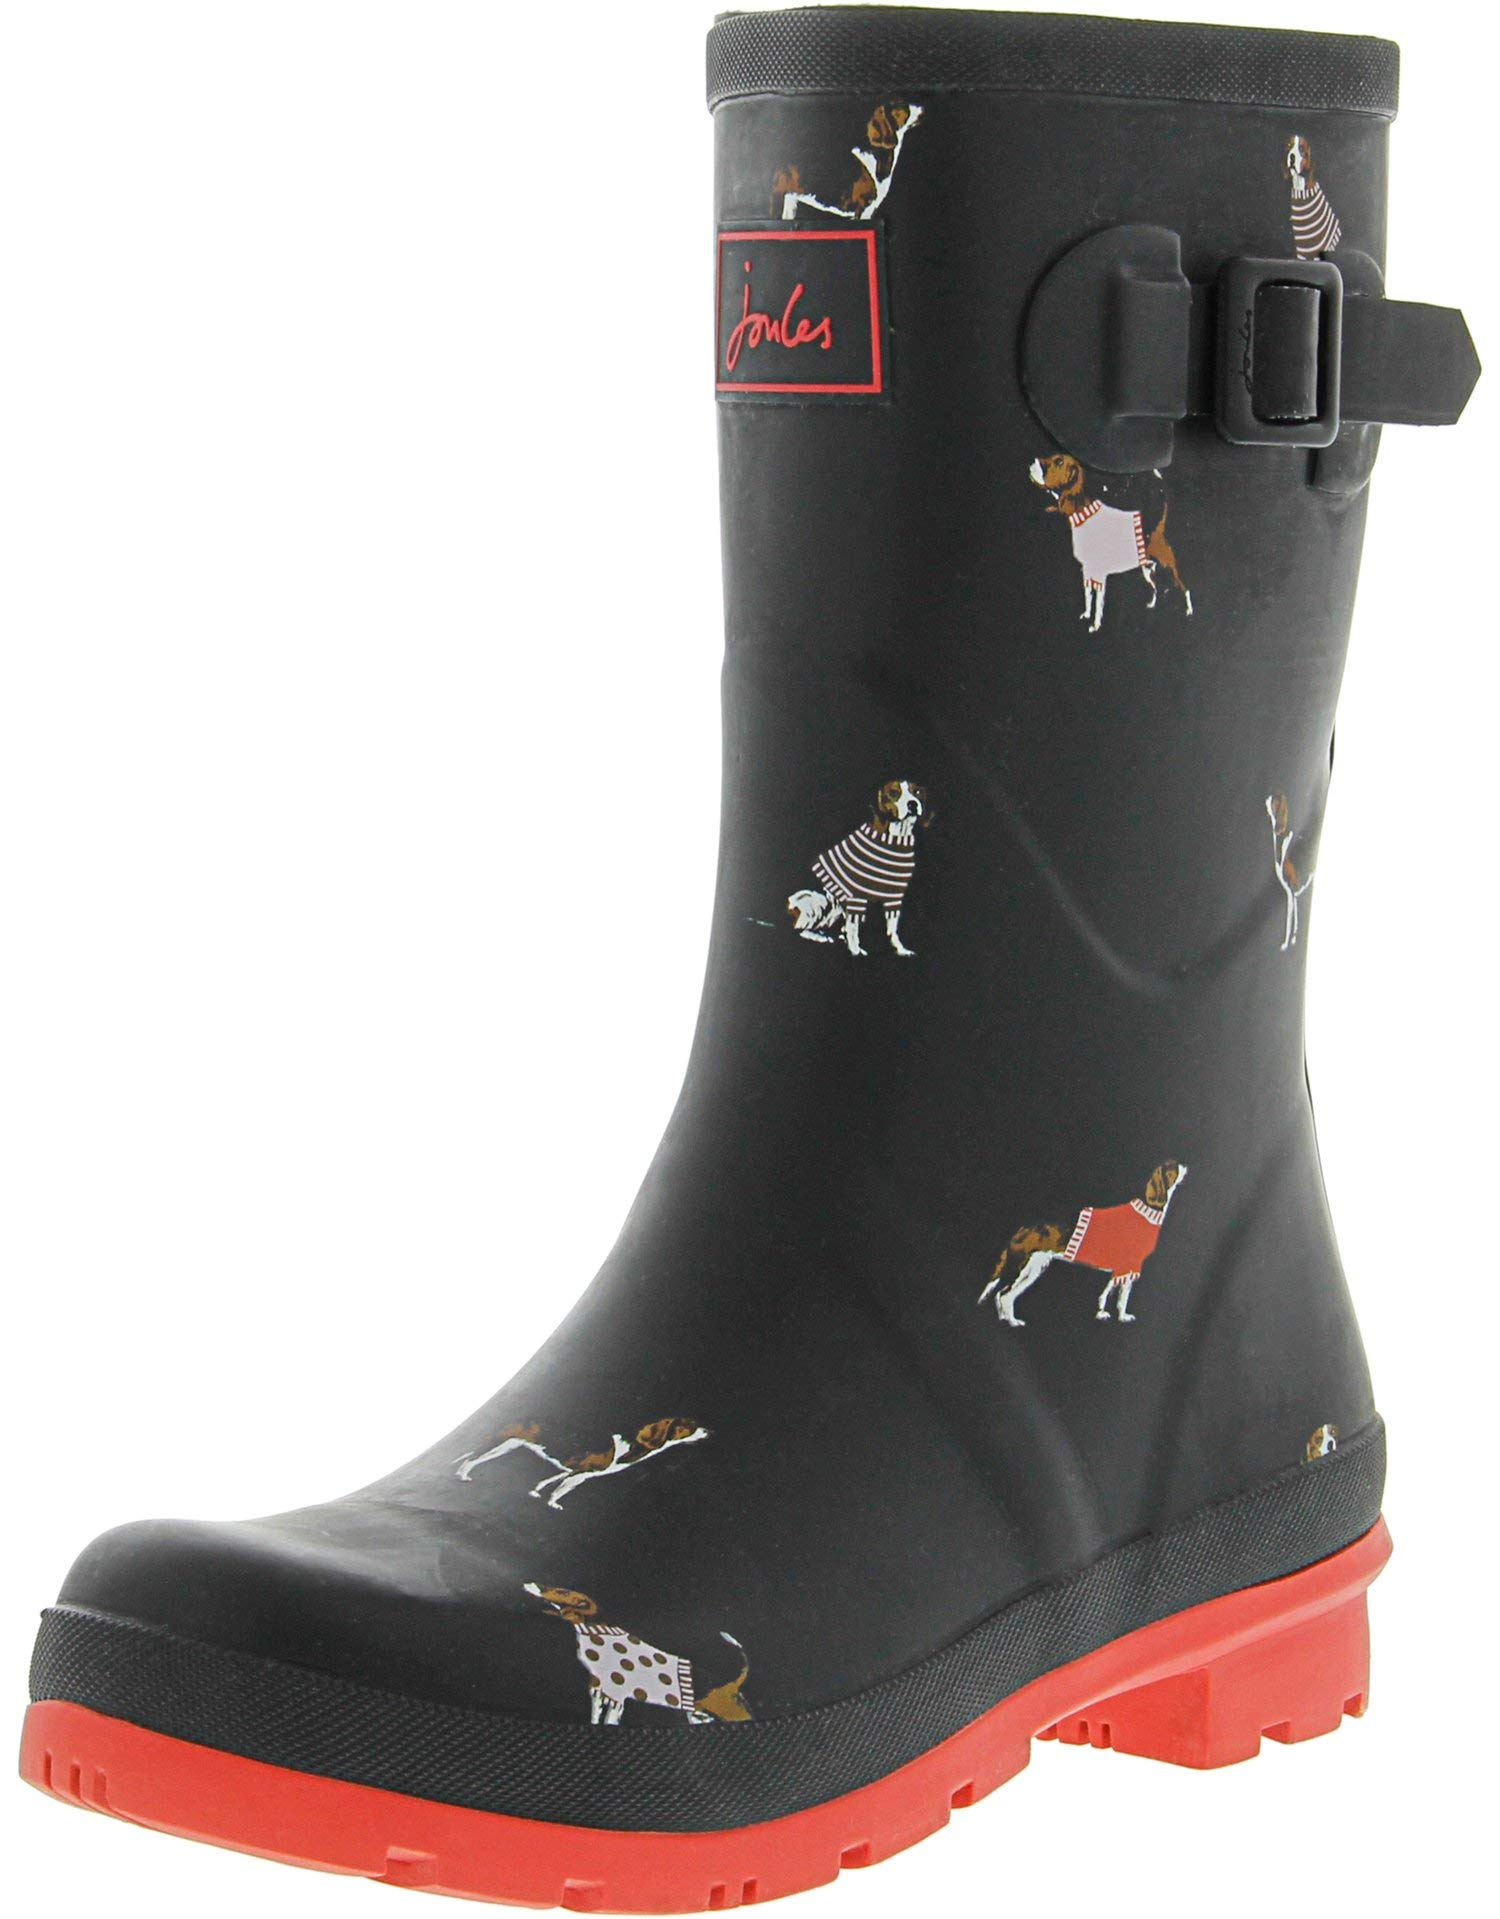 Joules Women's Molly Welly Rain Boot, Black Jumper Dog, 8 Medium US